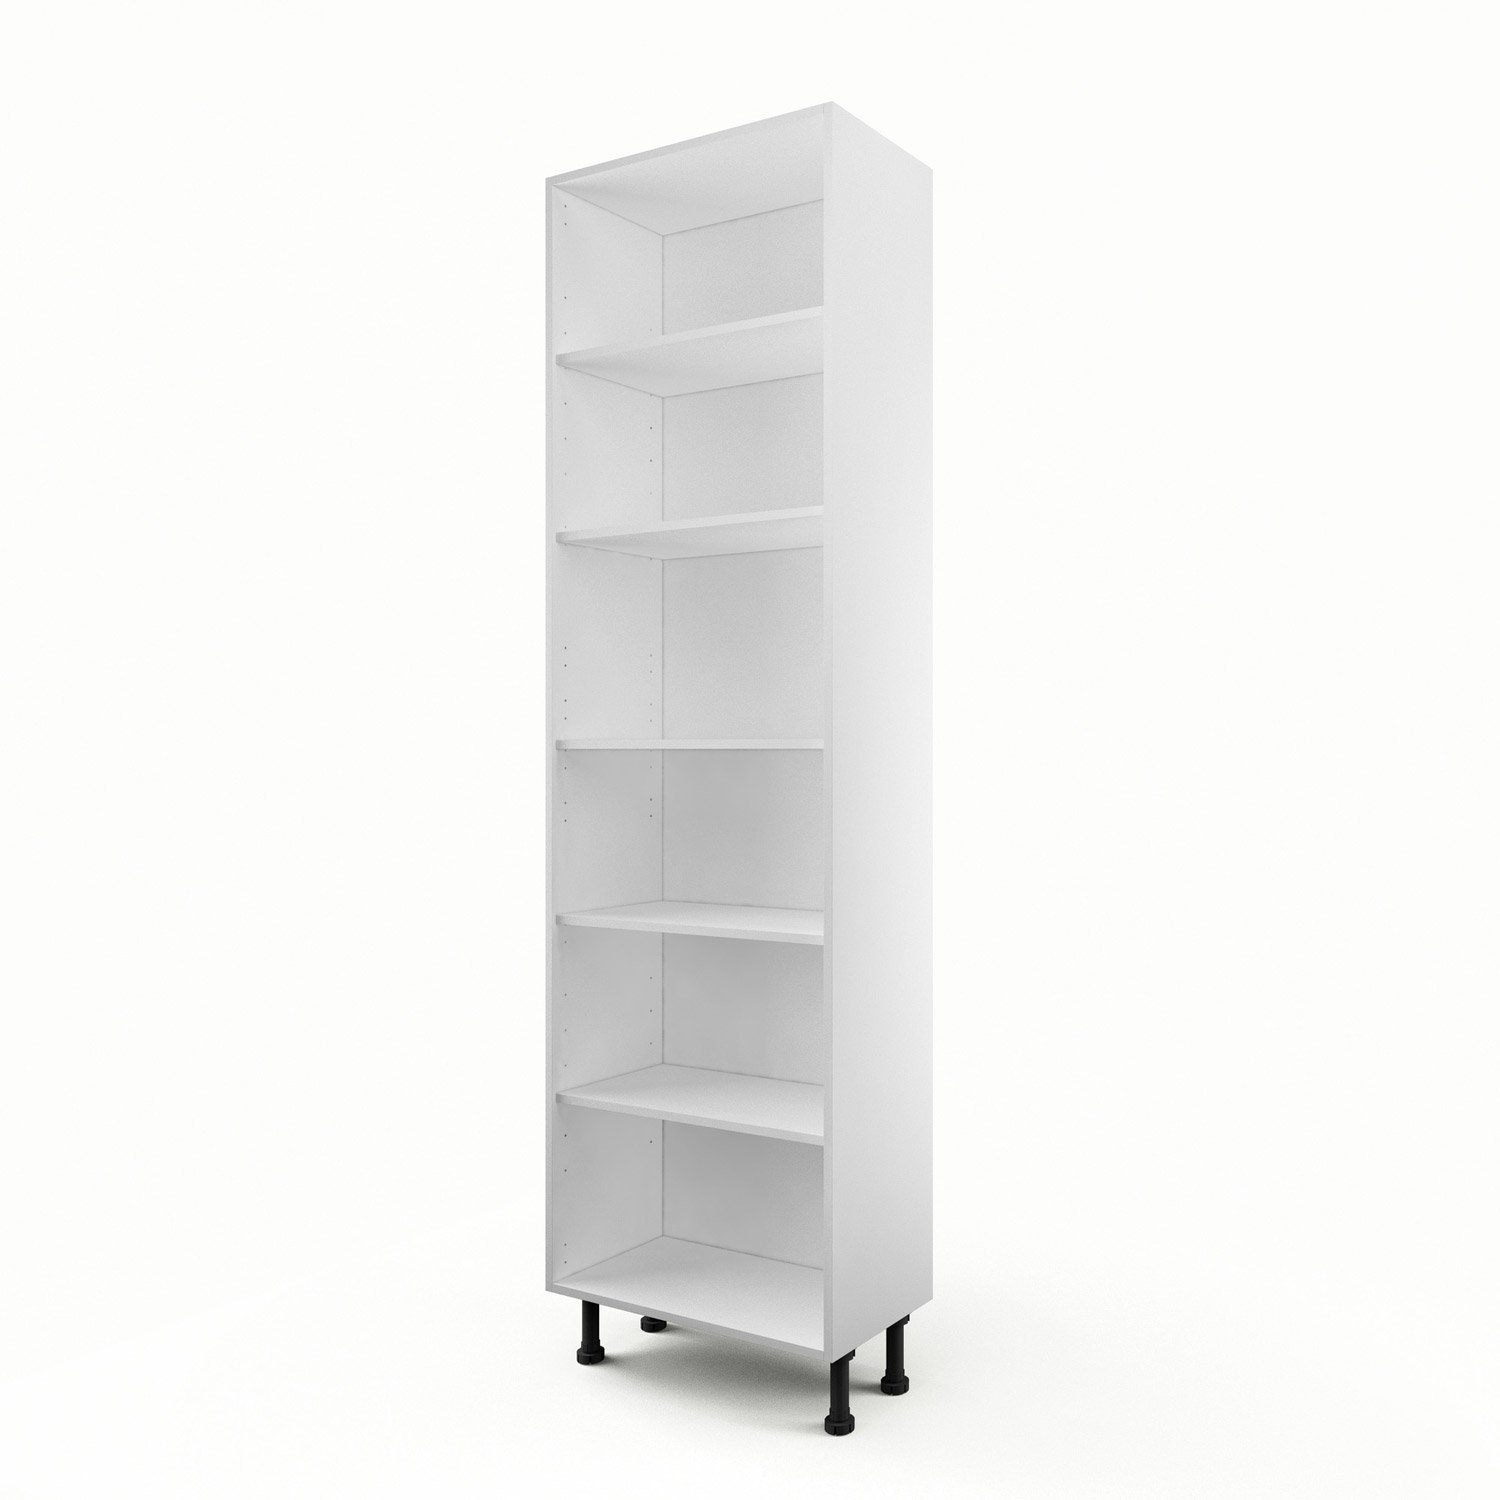 caisson de cuisine armoire a60 delinia blanc x x cm leroy merlin. Black Bedroom Furniture Sets. Home Design Ideas